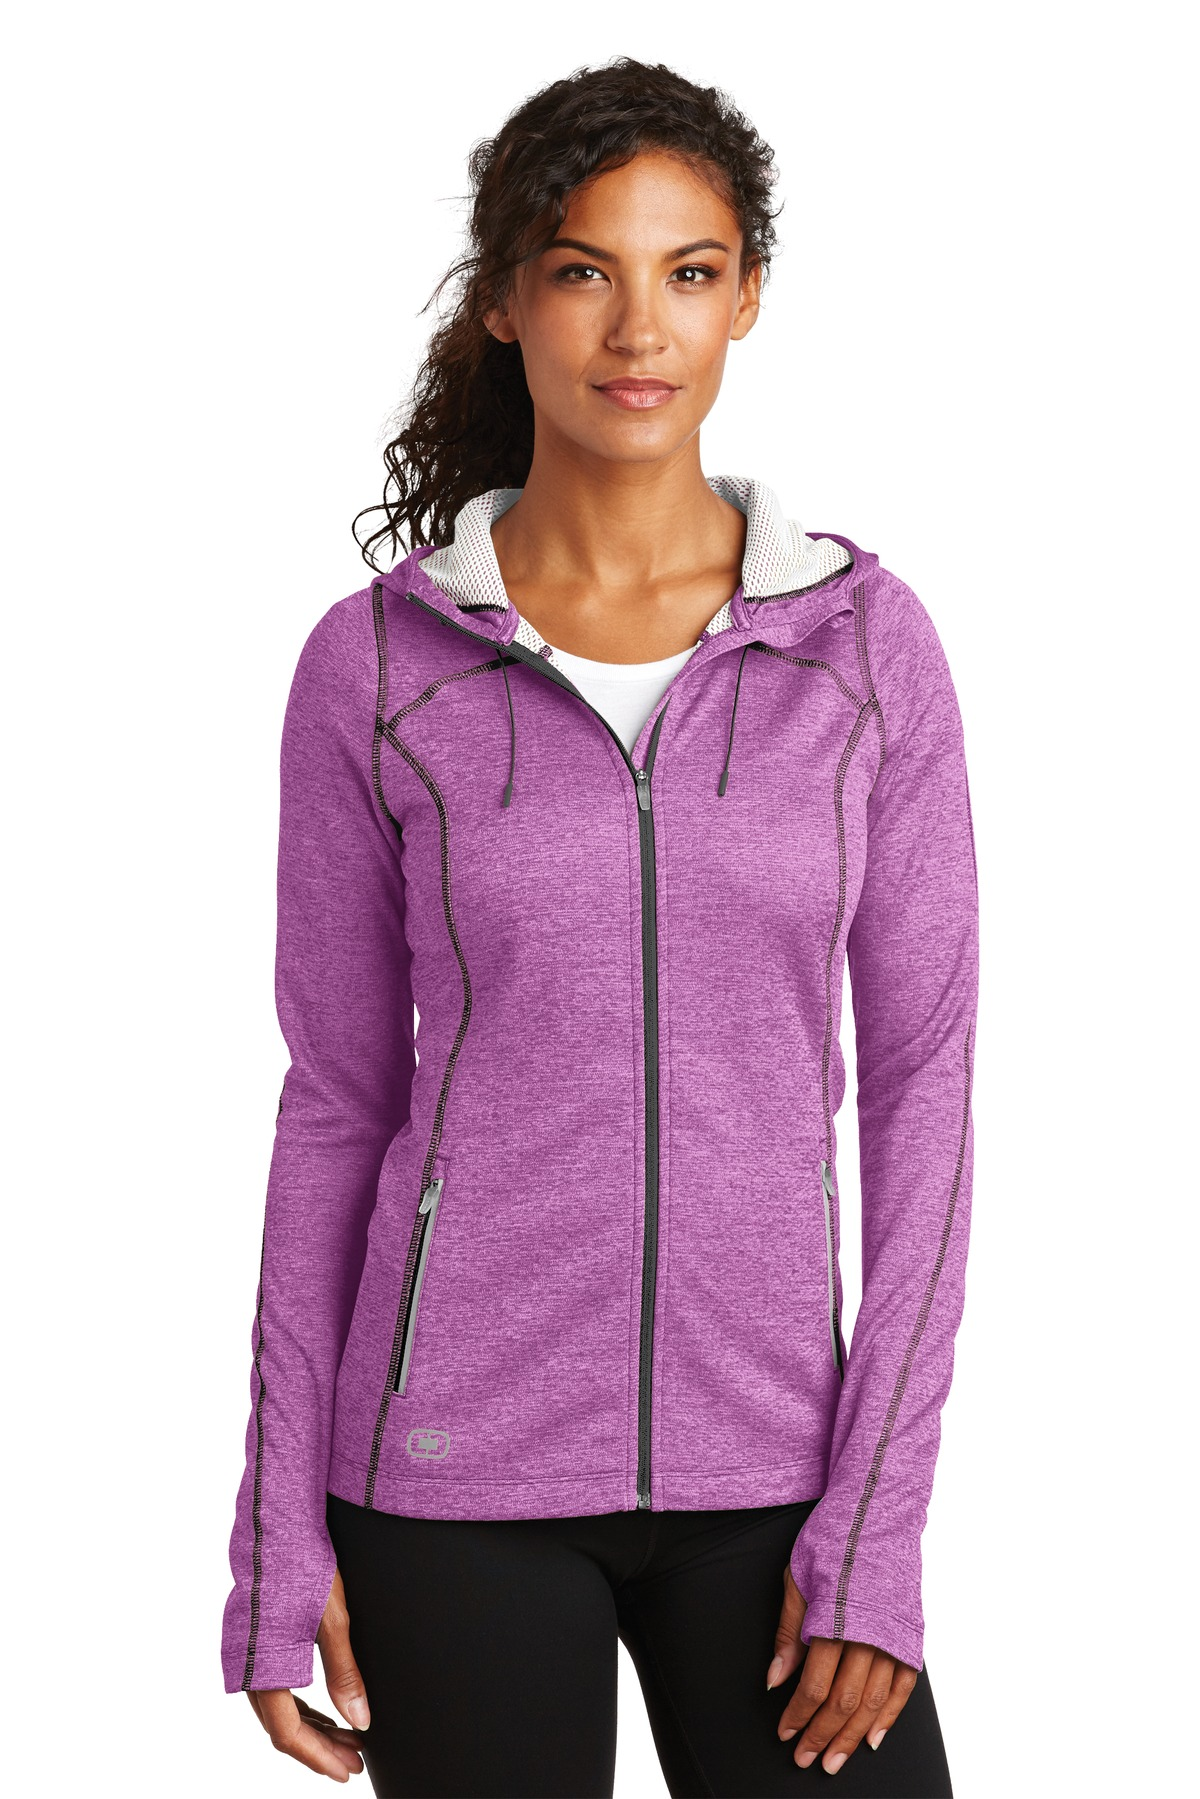 OGIO ®  ENDURANCE Ladies Pursuit Full-Zip. LOE501 - Purple Impact